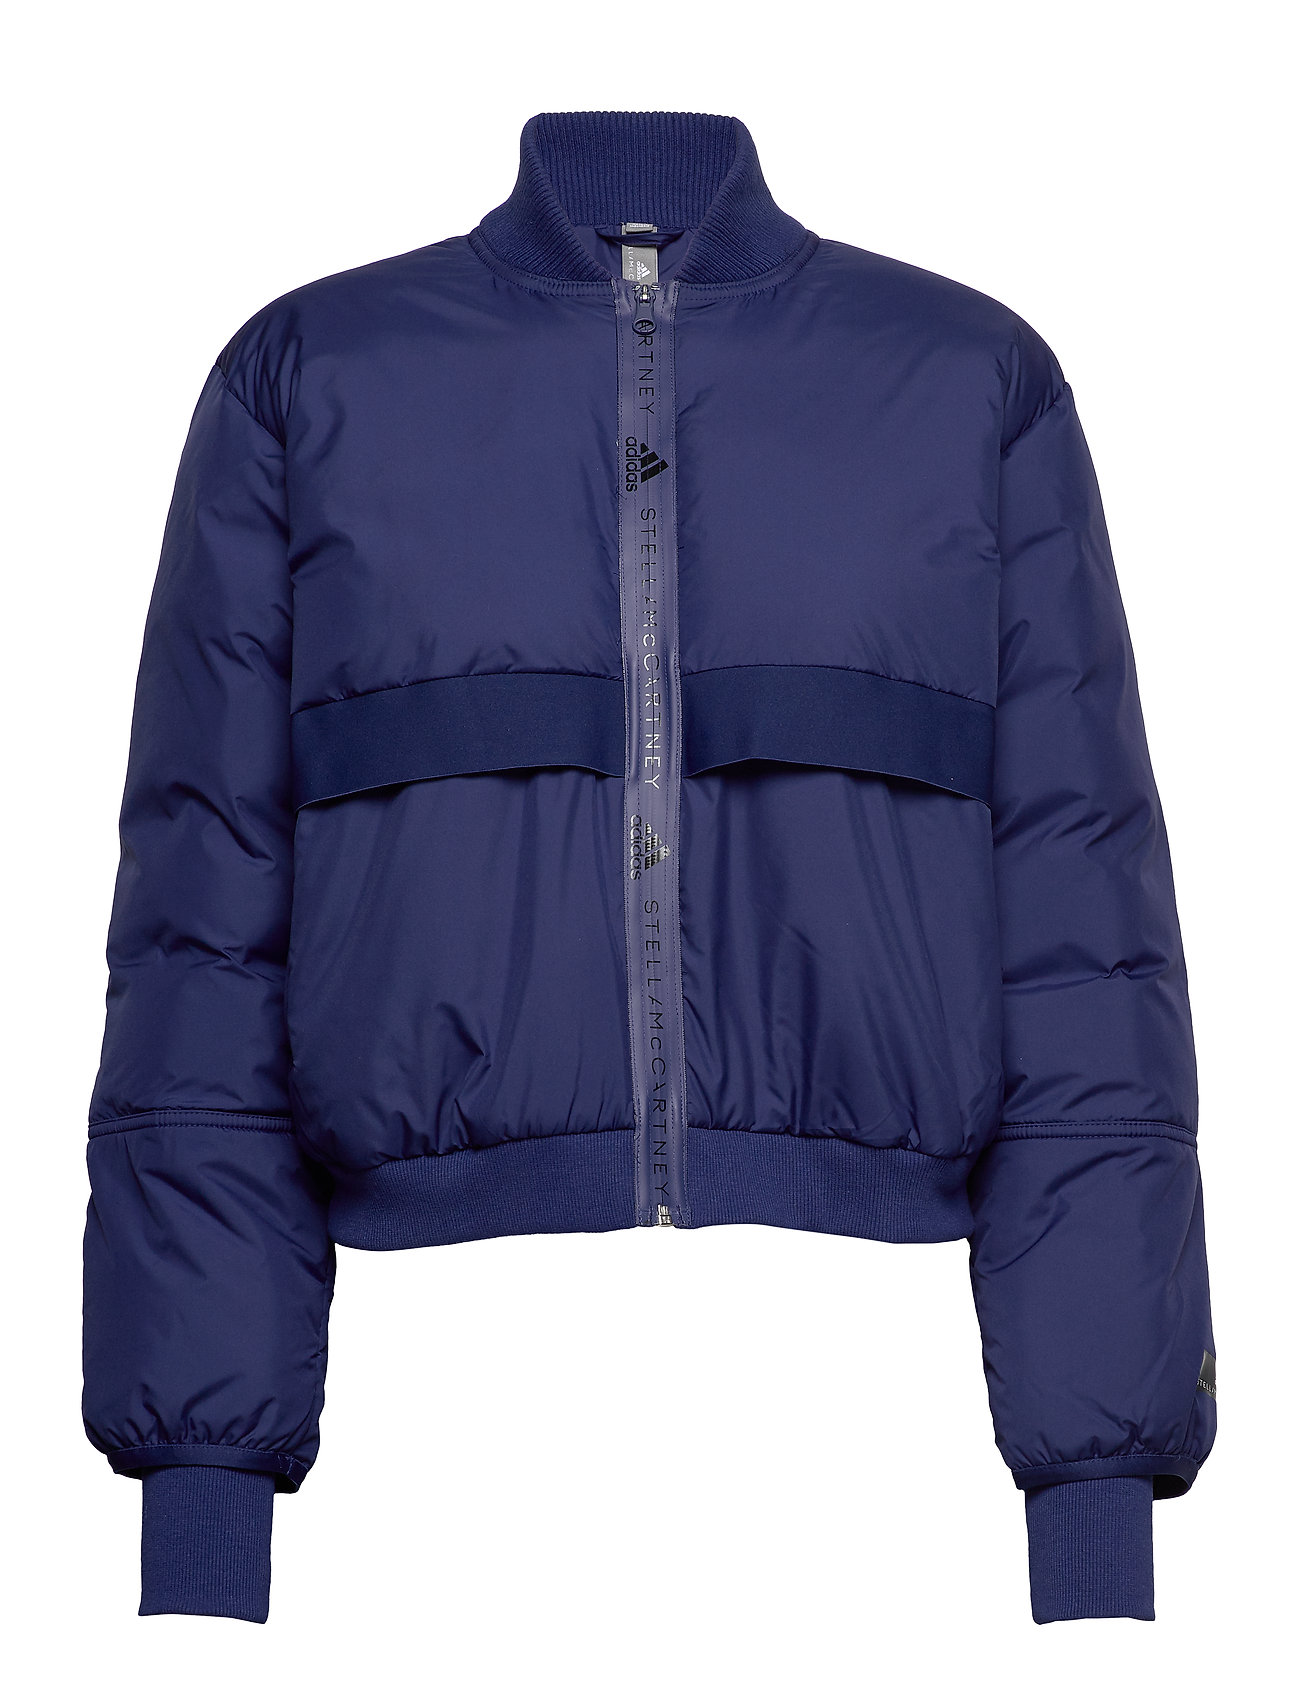 adidas by Stella McCartney PADDED BOMBER - DKBLUE